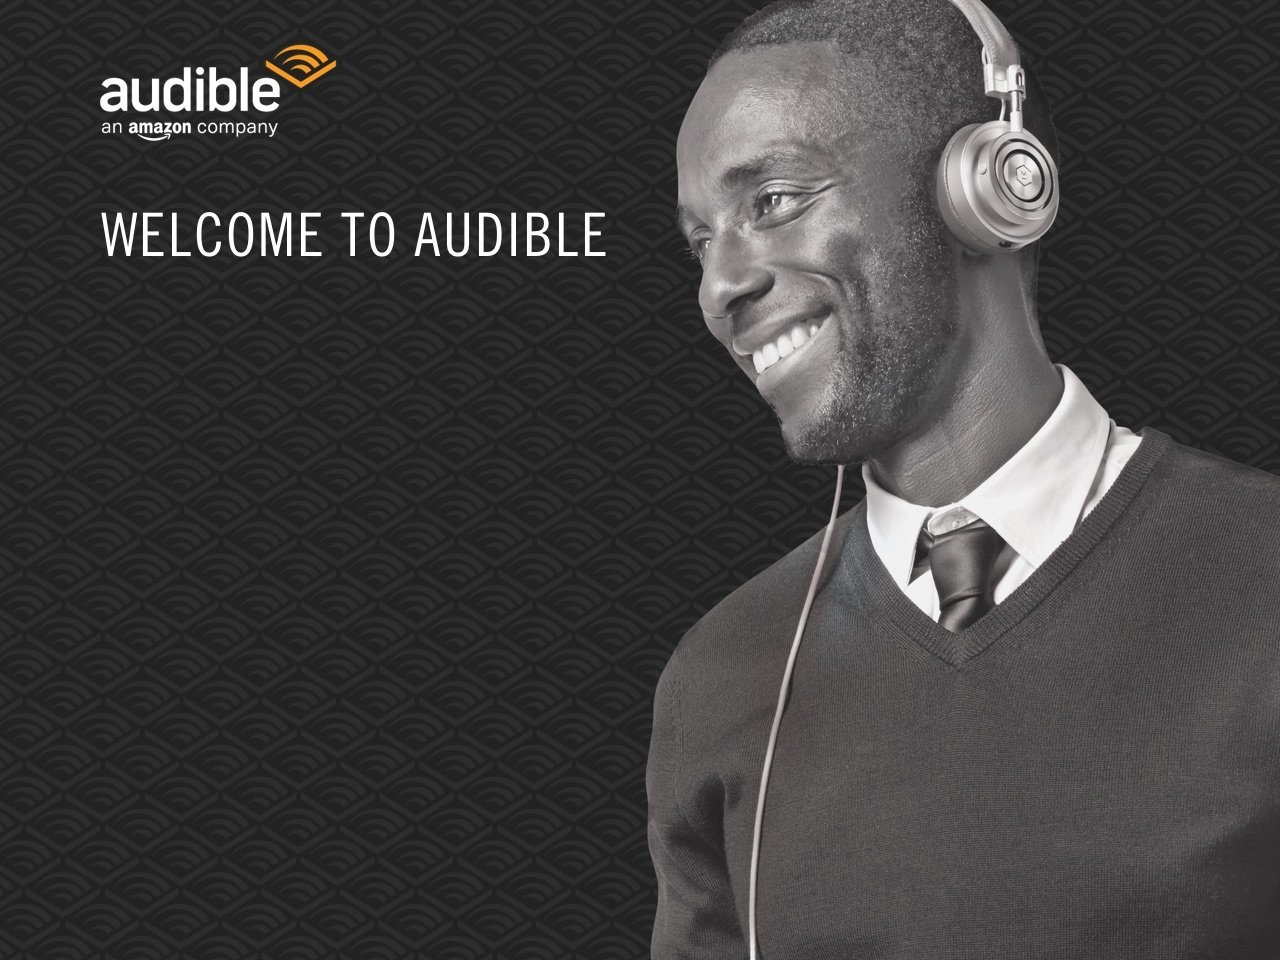 At the end of the 2-month promotional period, your Audible.com subscription will be automatically renewed at the then current full price (currently $14.95 per month) with your designated credit card or another available card on file. Cancel anytime. This promotion is available only for a limited time and for new customers of Audible.com. Offer expires 12/31/18. Other terms and conditions apply, including those available at http://www.audible.com/gift-terms. Audible reserves the right to cancel at any time.